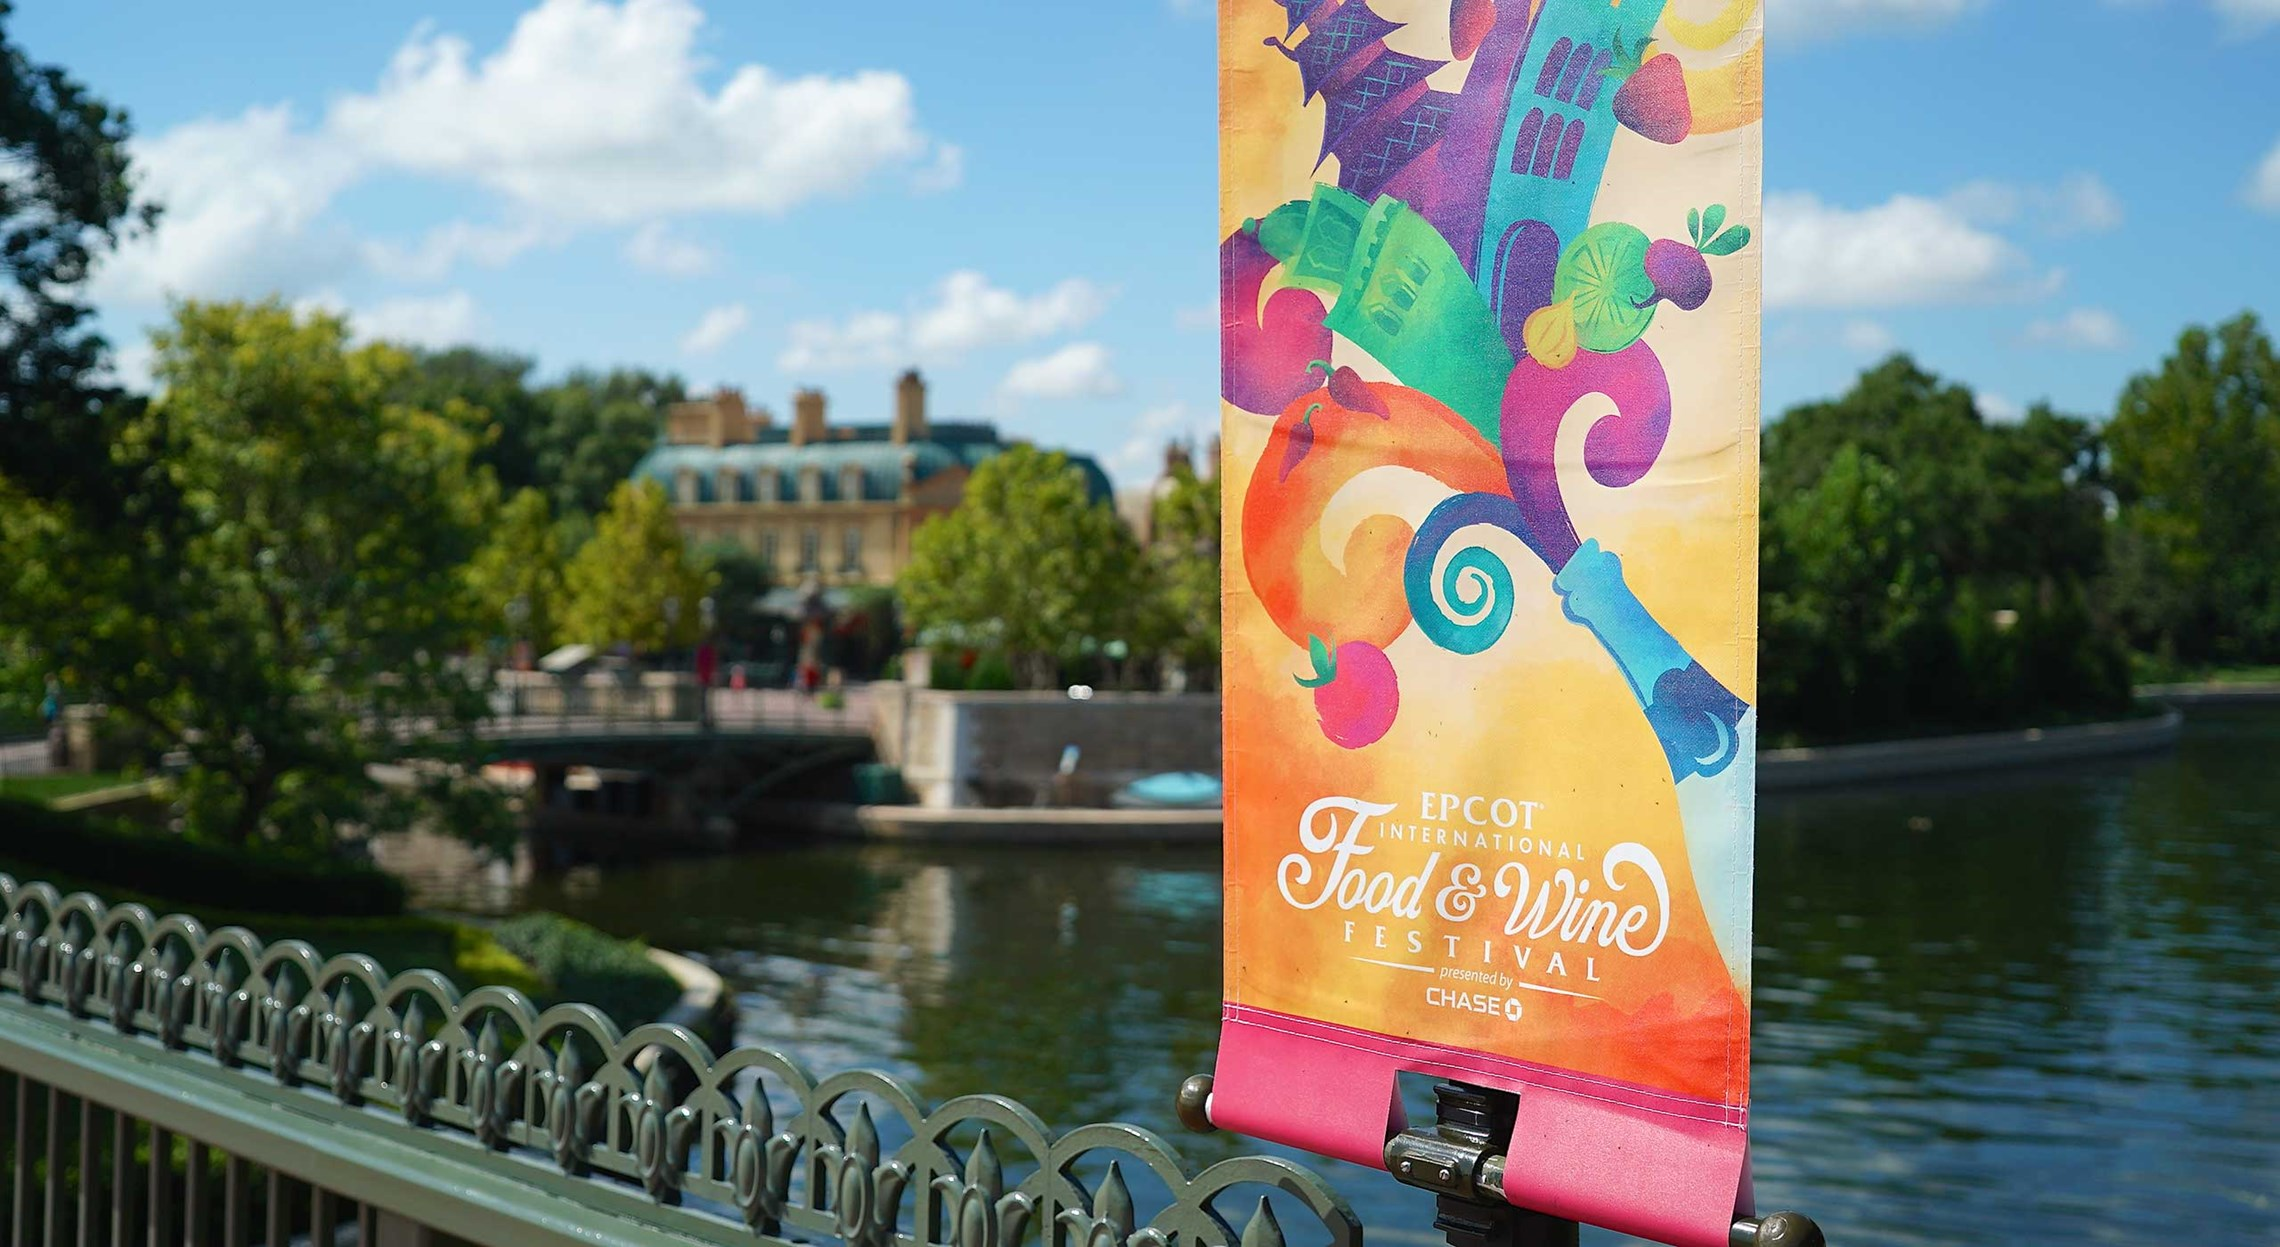 2015 Epcot Food and Wine Festival Guide